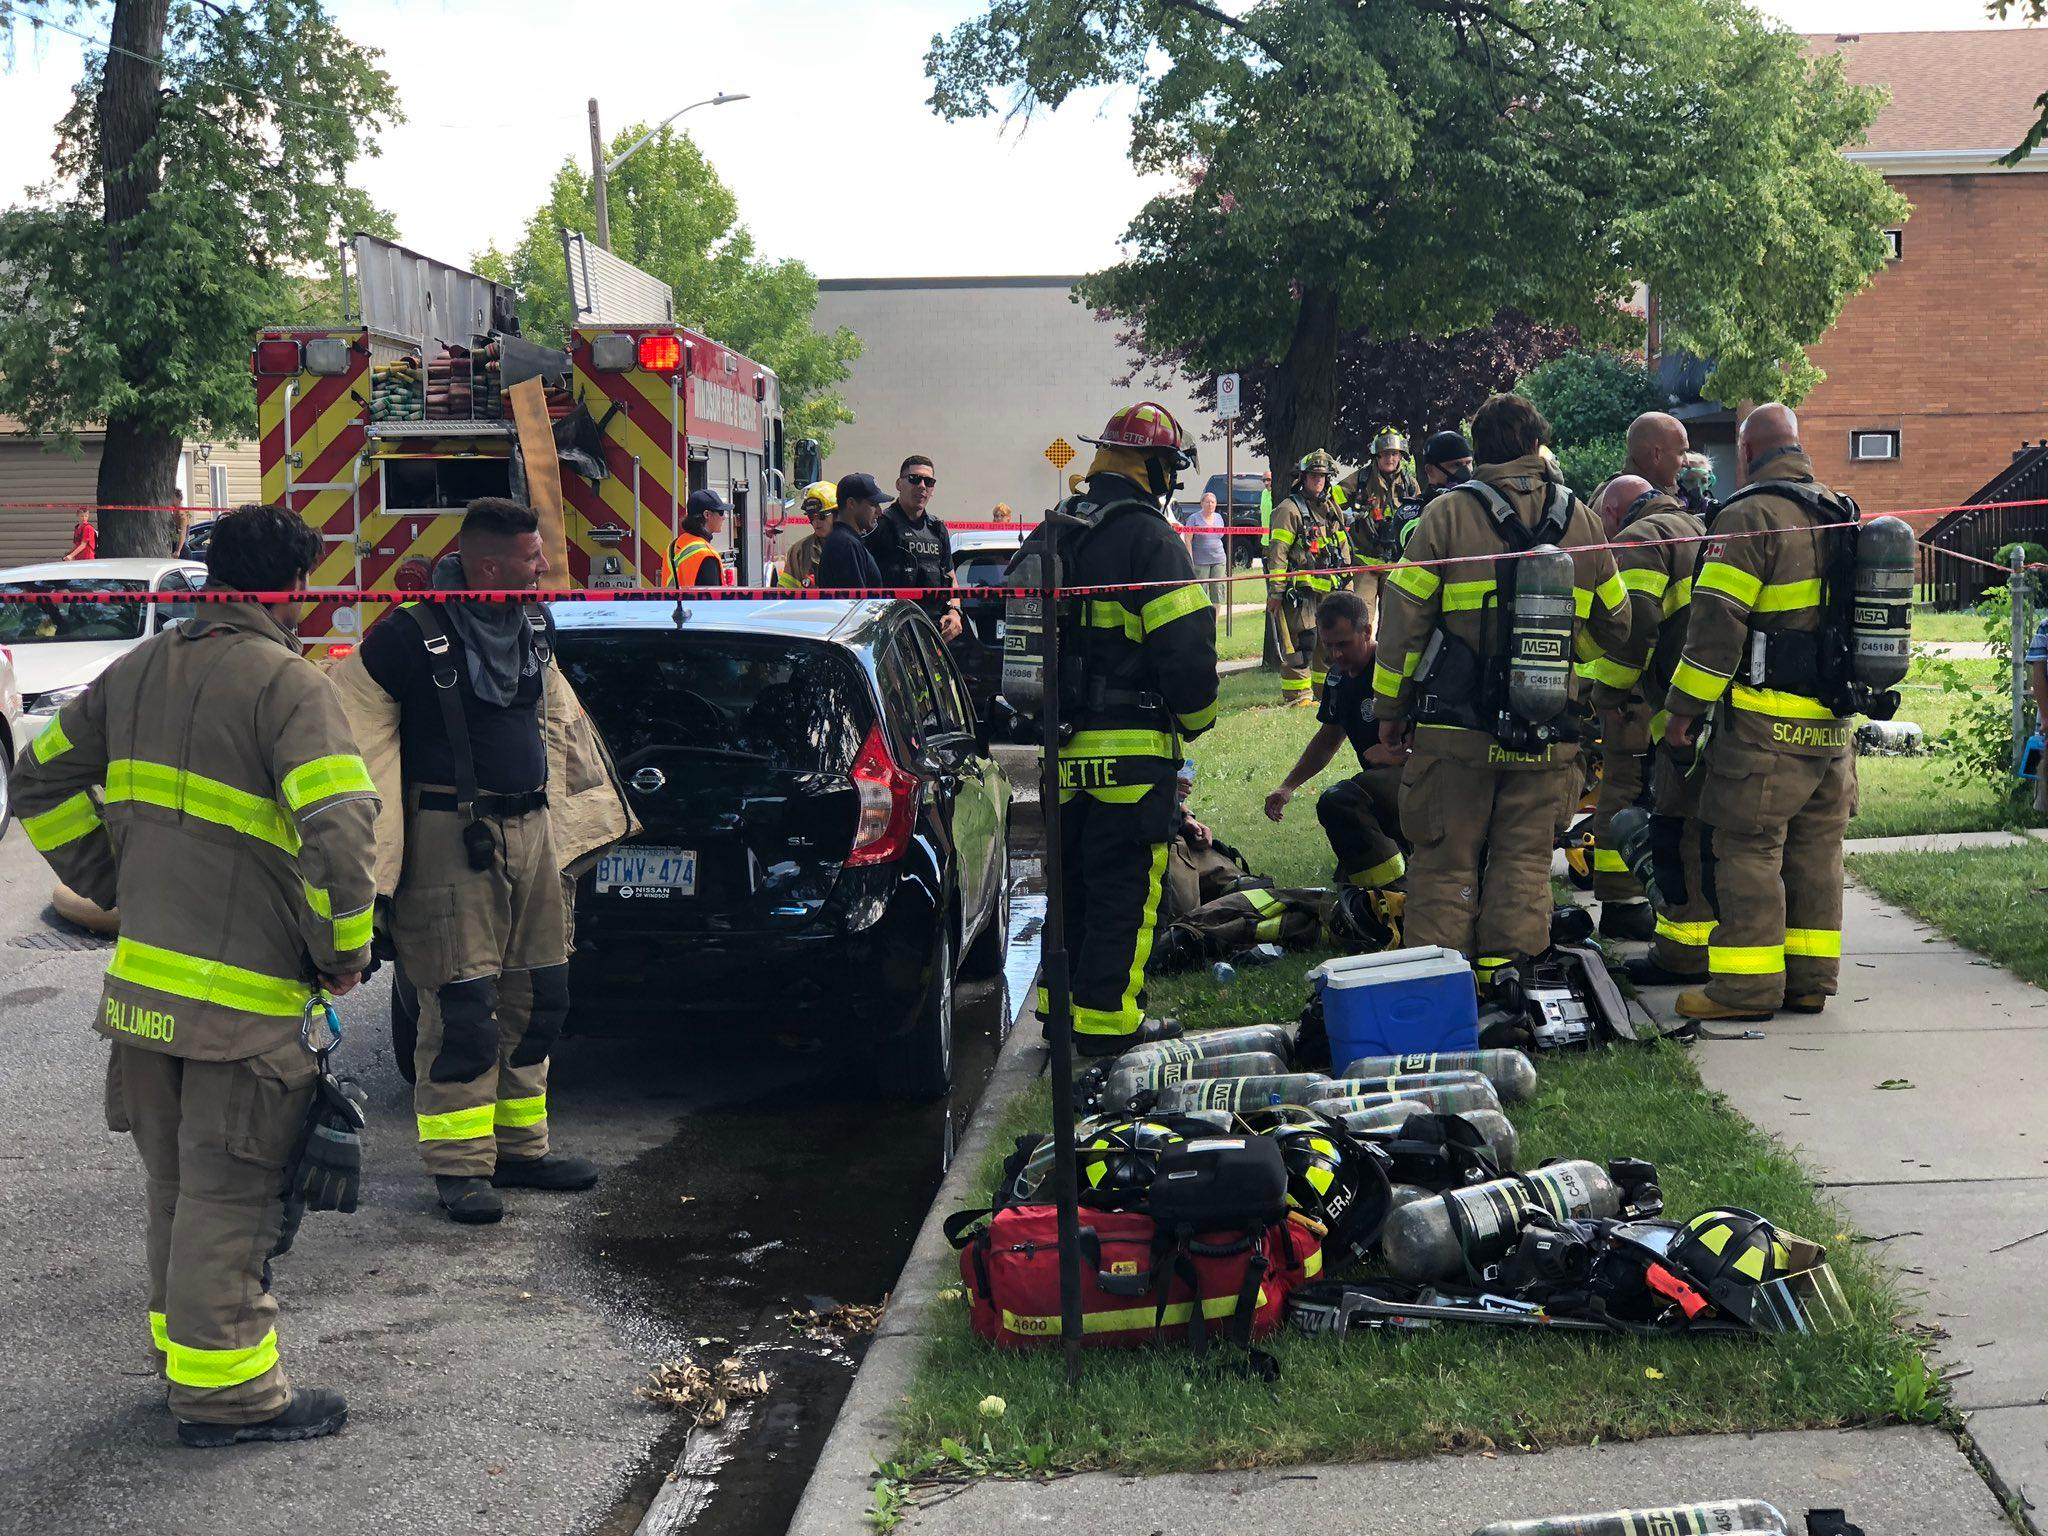 am800-news-house-fire-1500-block-gladstone-july-11-2020